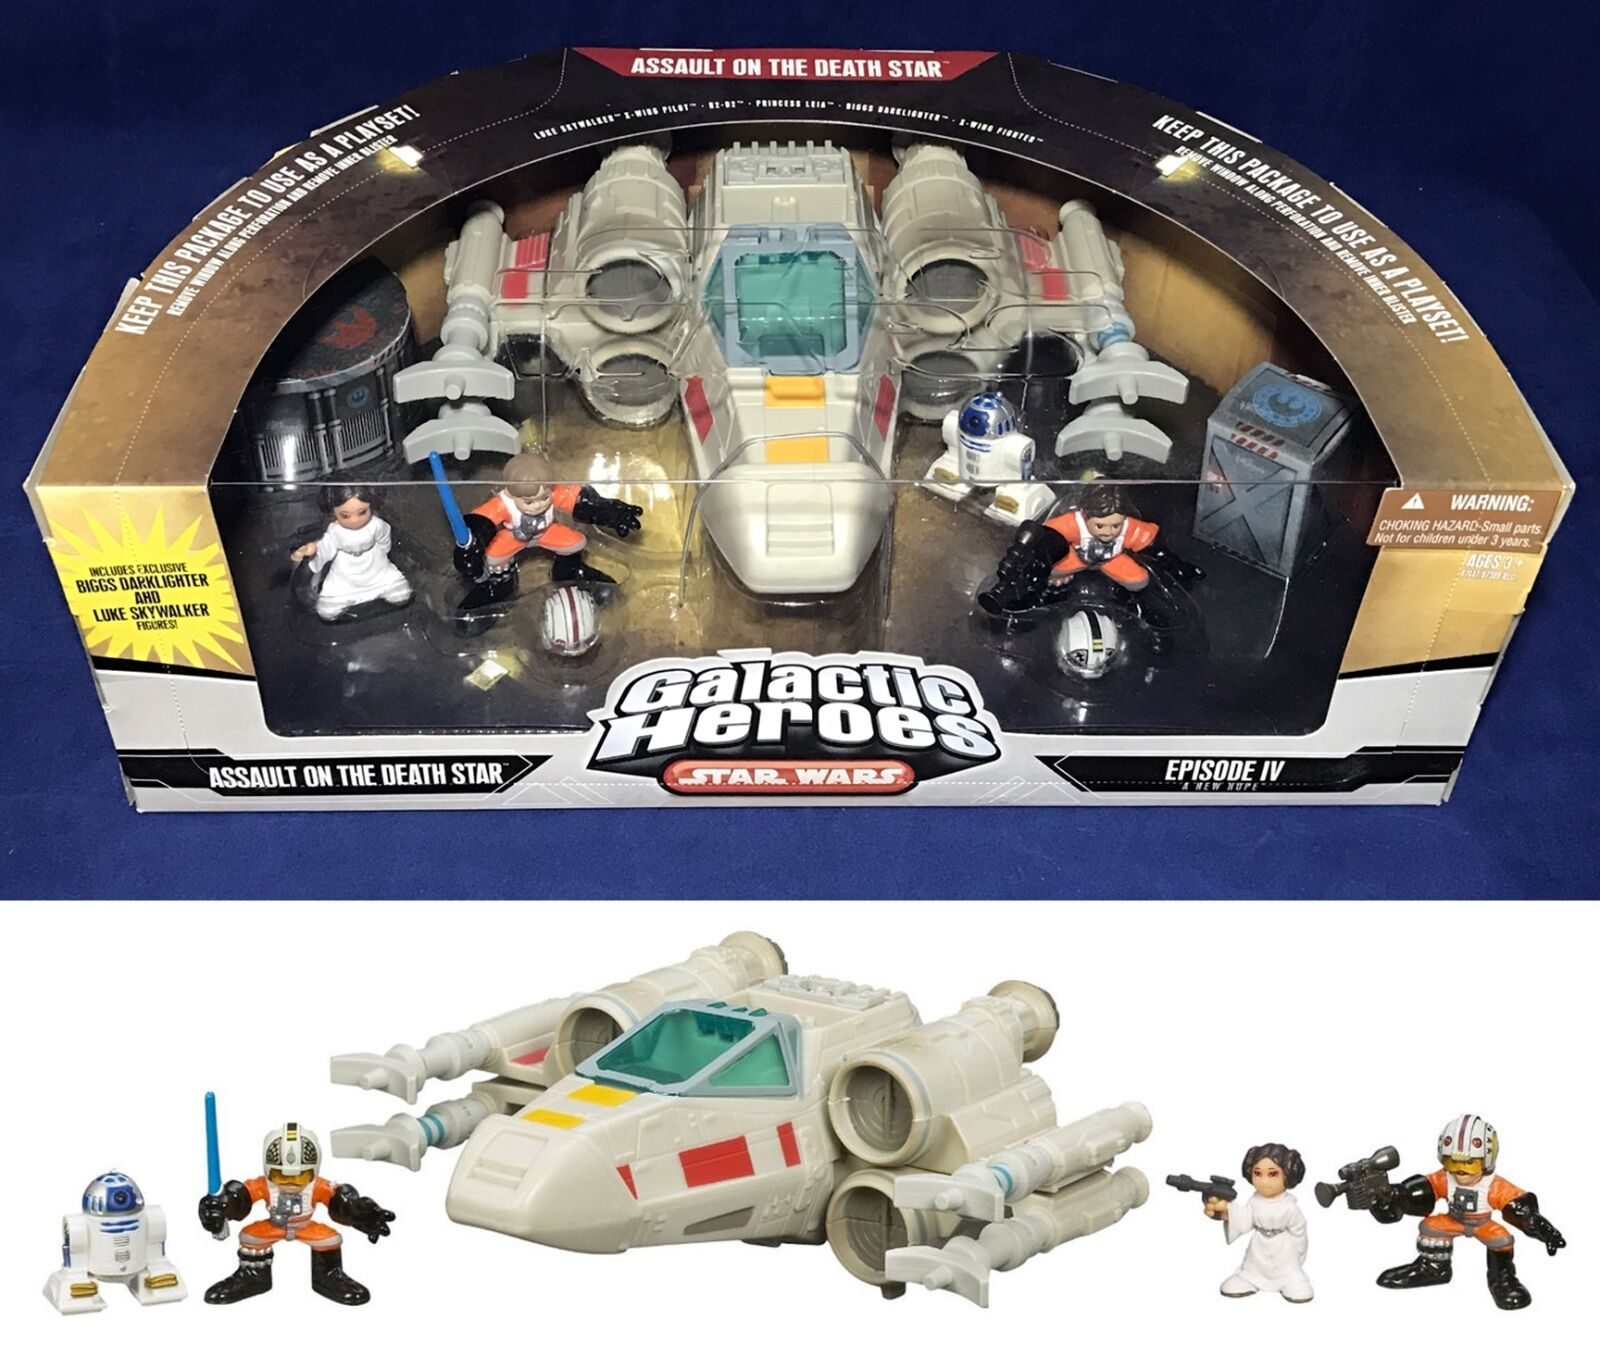 NEW - Star Wars Galactic Heroes ASSAULT ON DEATH STAR - Biggs - X-WING FIGHTER